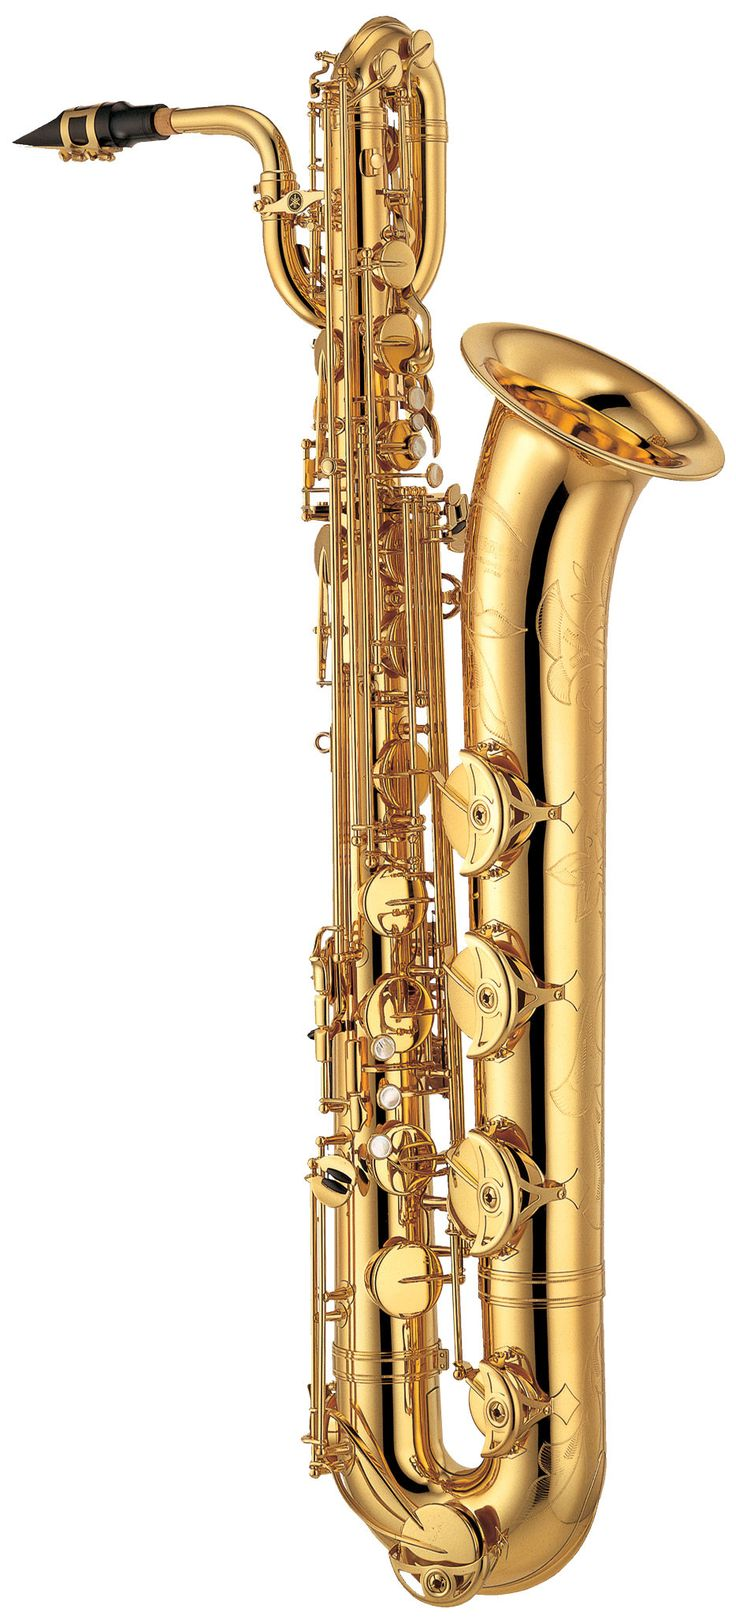 baritone saxophone / must enlarge this to see the beauty...